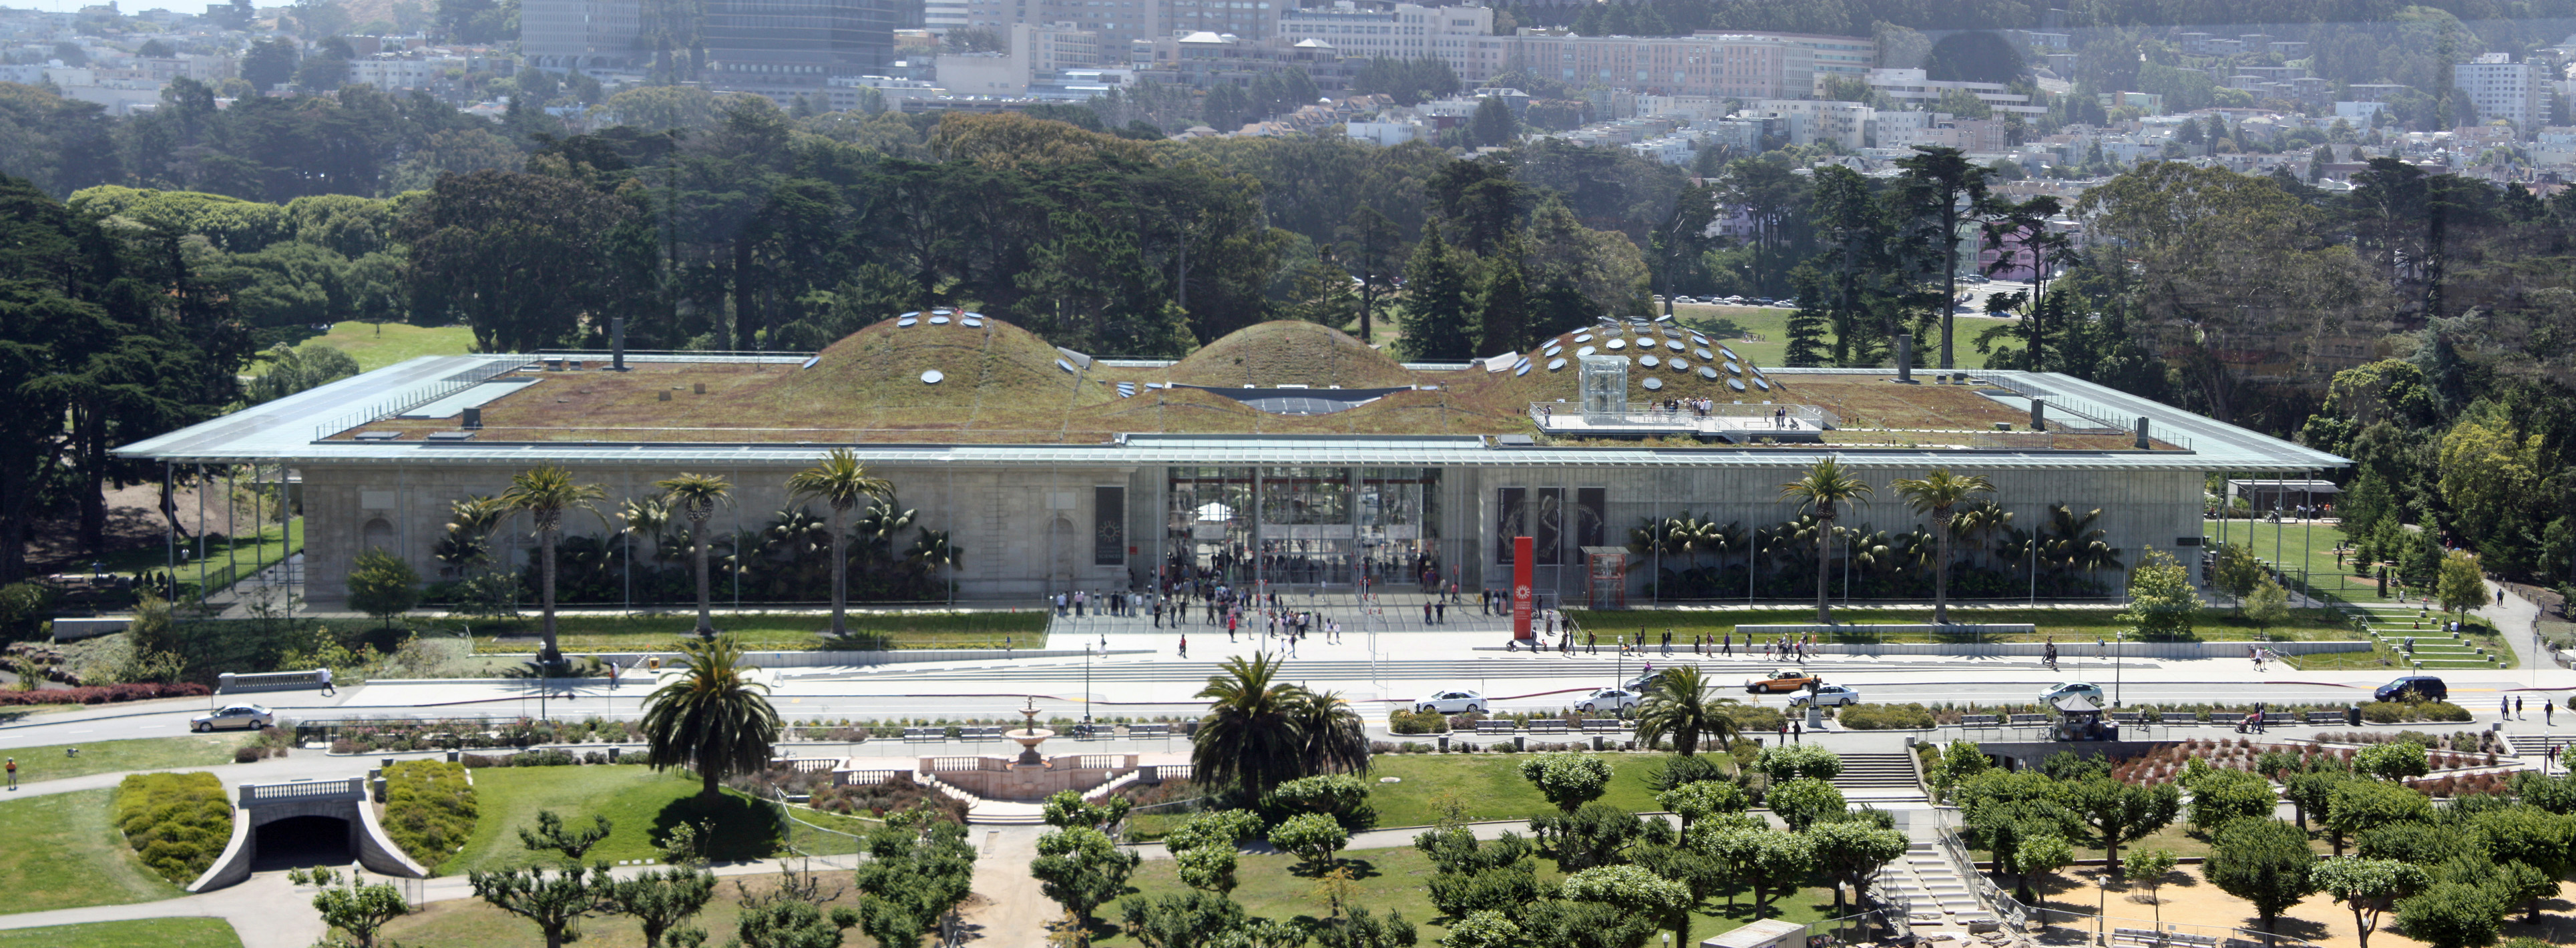 California Academy of Science